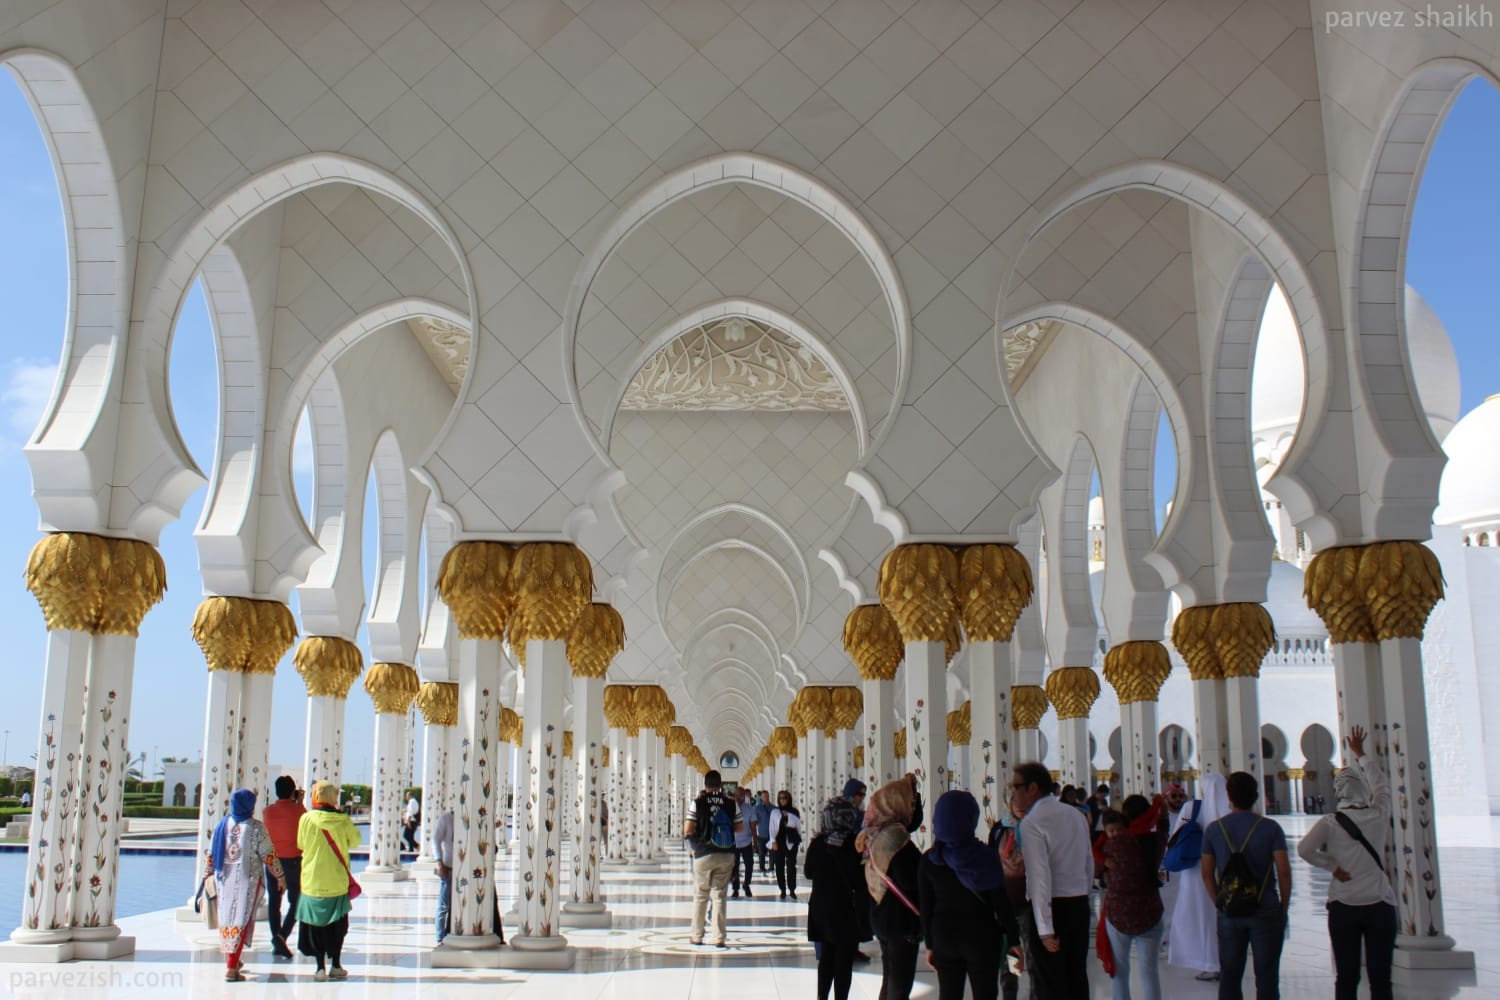 Abu Dhabi Grand Mosque Pillars